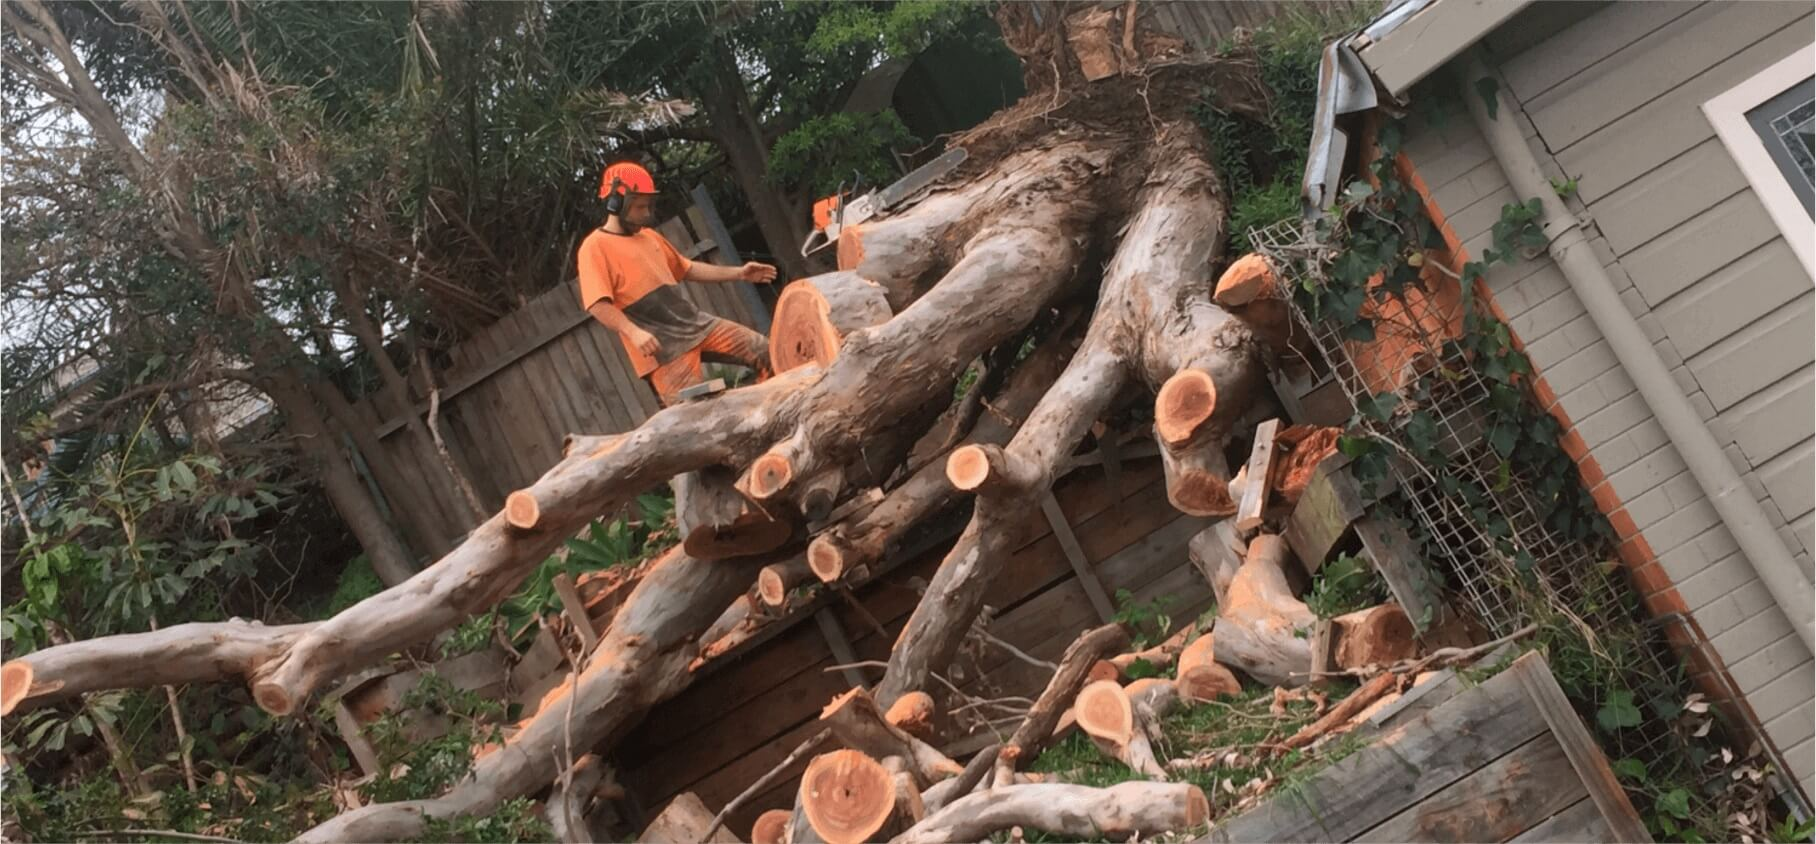 Kendall FL Tree Trimming and Stump Grinding Services Home Page-We Offer Tree Trimming Services, Tree Removal, Tree Pruning, Tree Cutting, Residential and Commercial Tree Trimming Services, Storm Damage, Emergency Tree Removal, Land Clearing, Tree Companies, Tree Care Service, Stump Grinding, and we're the Best Tree Trimming Company Near You Guaranteed!